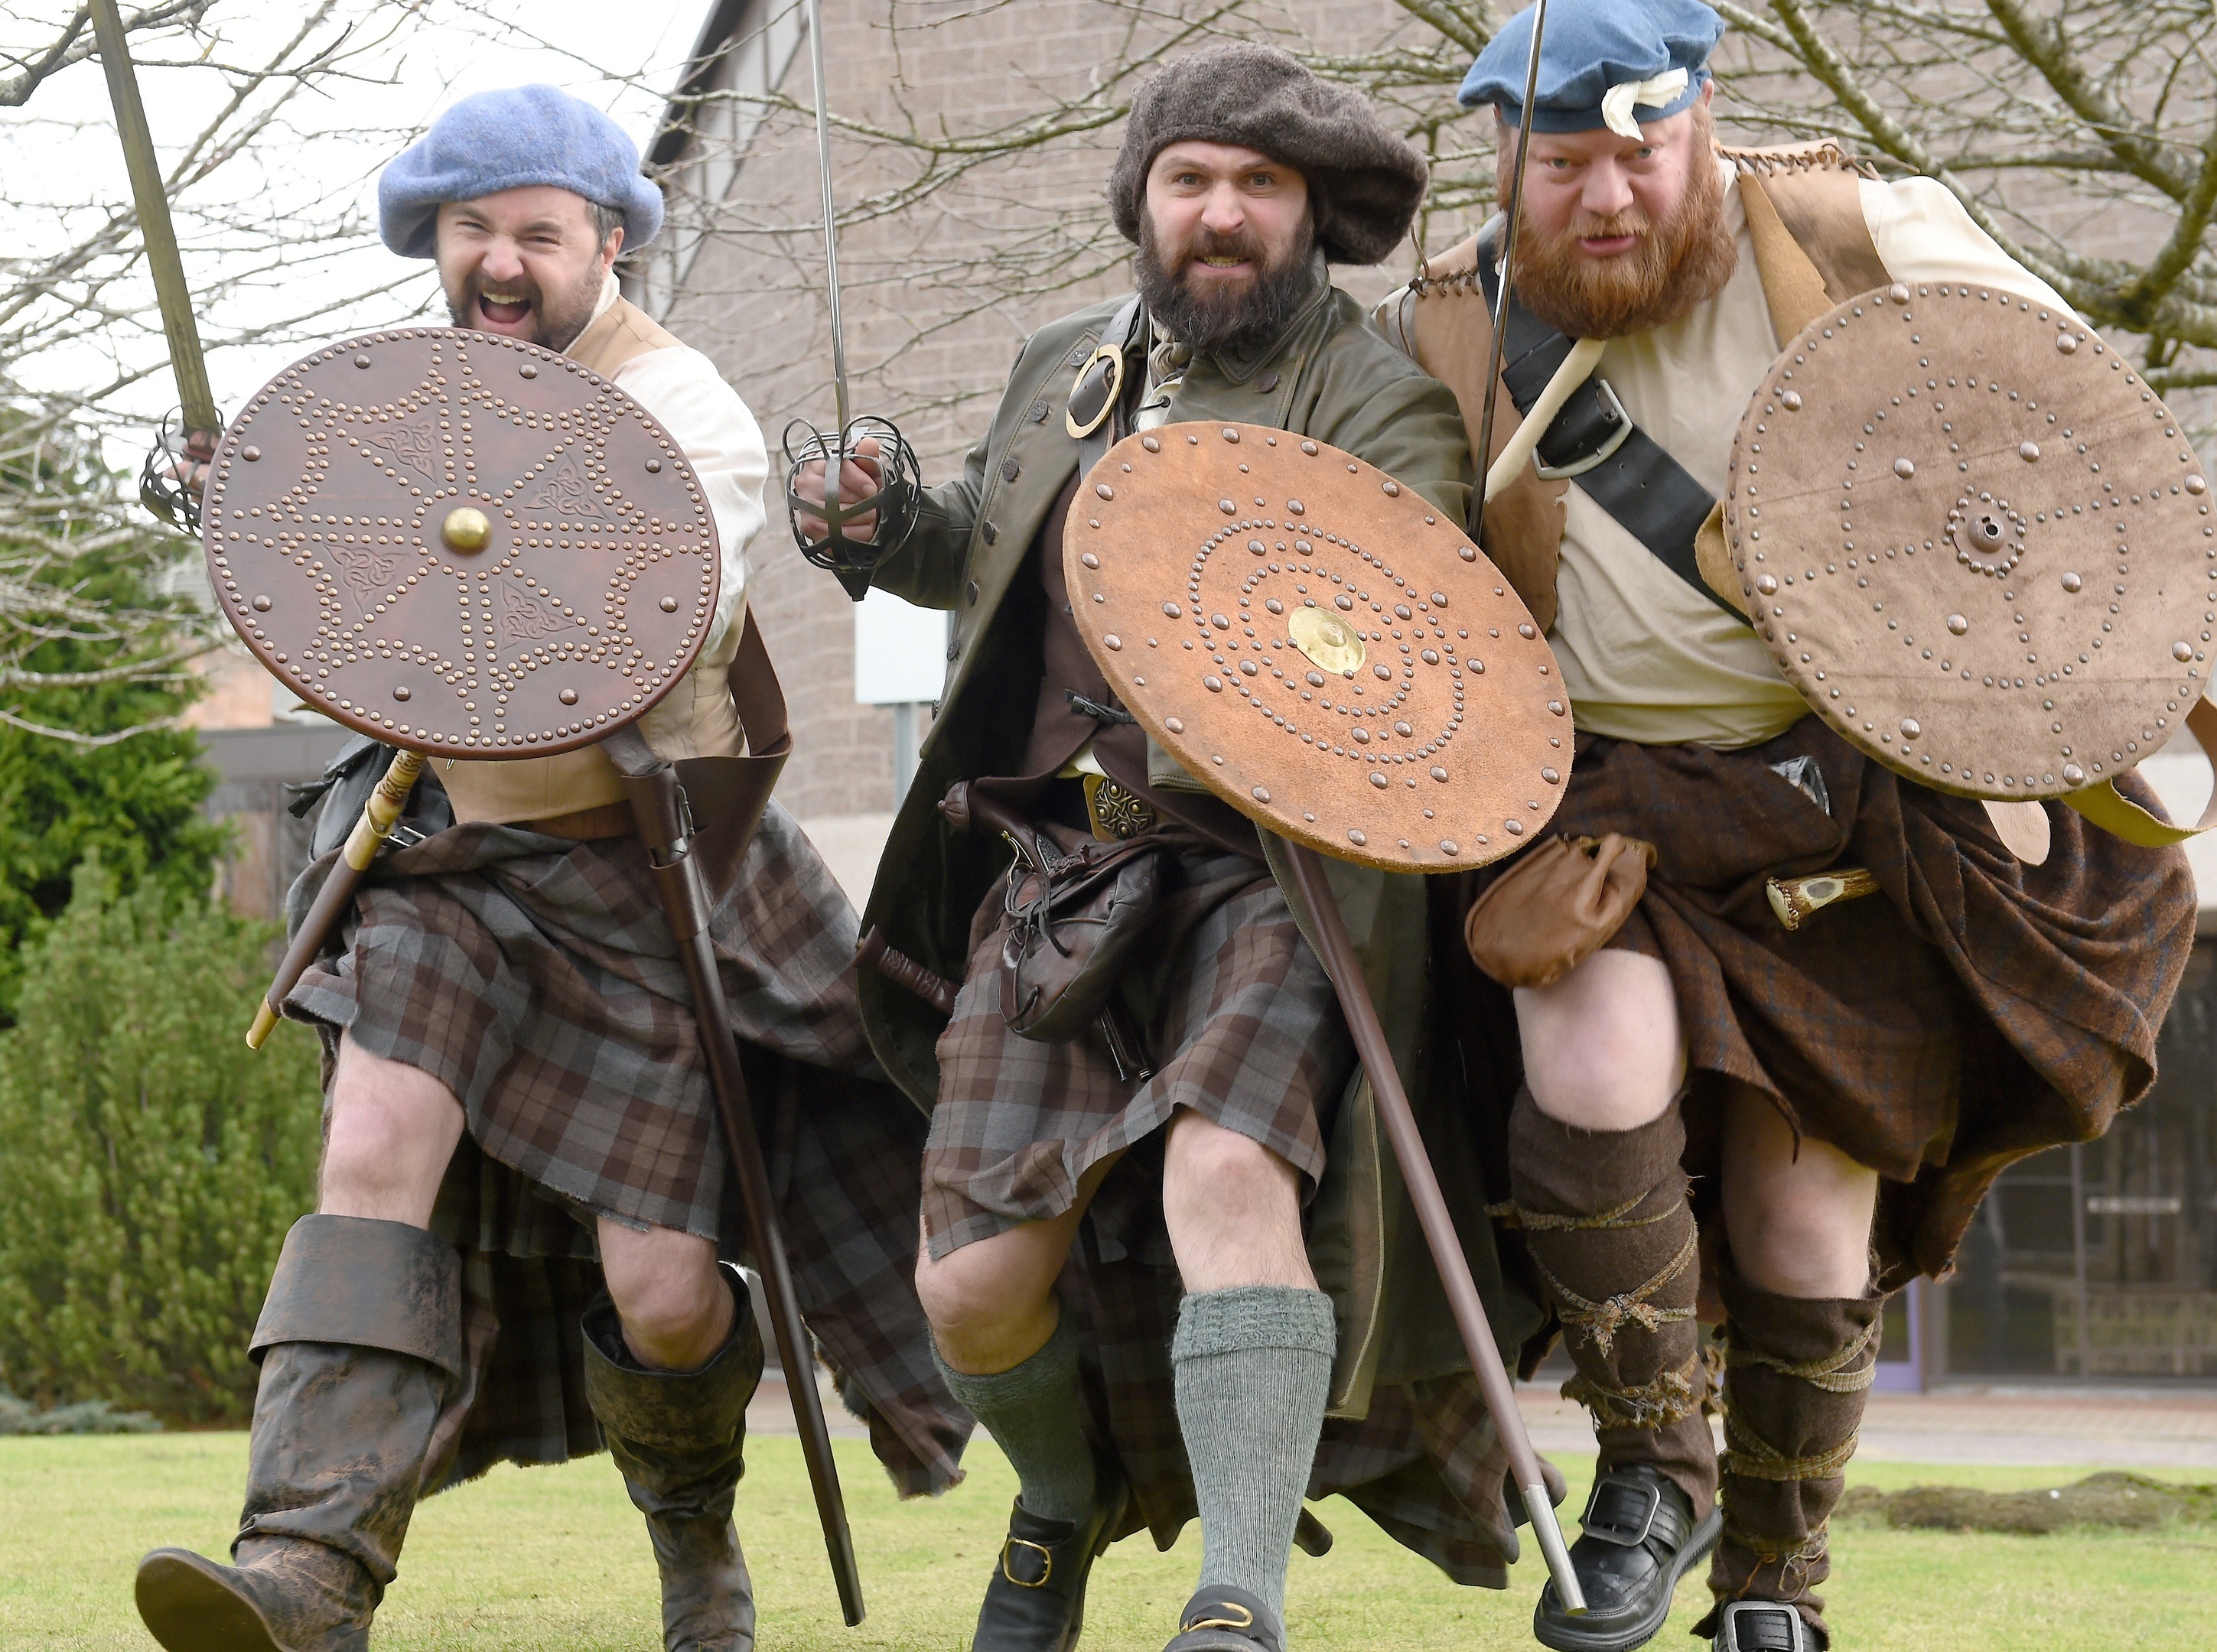 Preparing to do battle with Highland Council to protect Culloden at yesterdays Highland Council Planning meeting in Inverness are (L-R) Grant MacGregor. Andy McAlindon and Steve MacLennan.